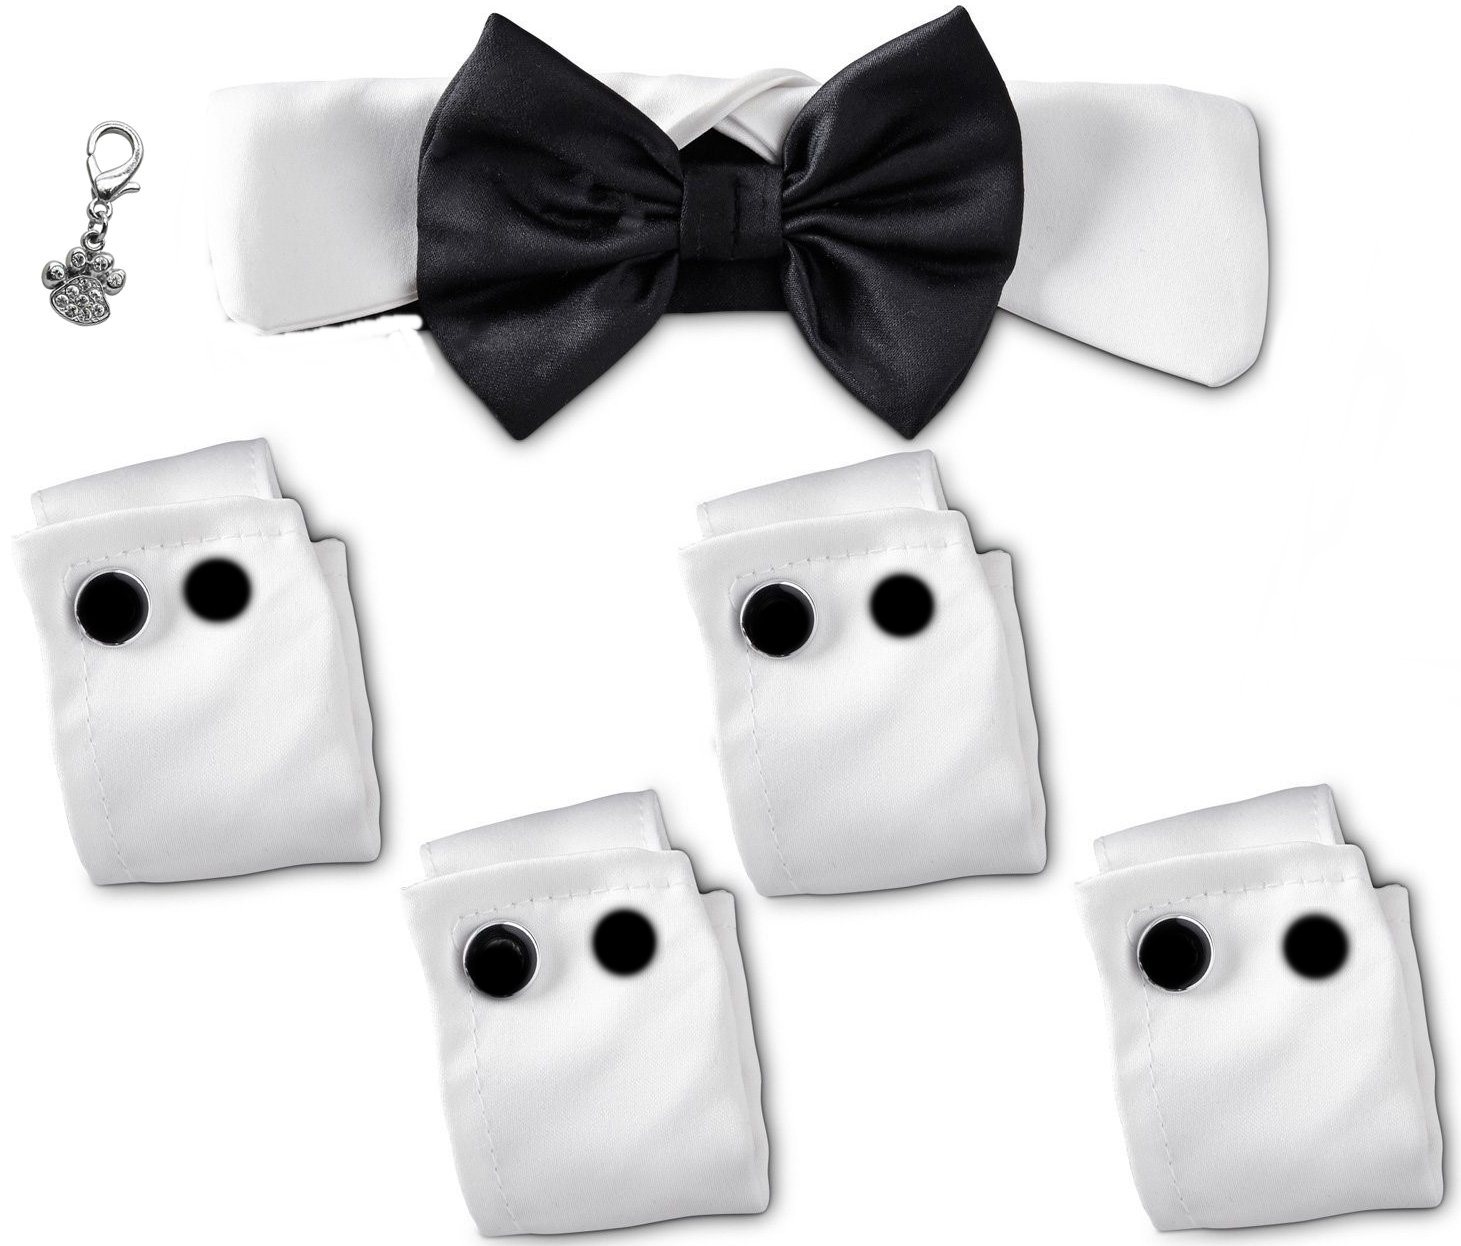 Rubie's Costume Co Formal Tux Bow Tie Collar and Cuff Set with Rhinestone Clip Charm - White - for Dogs Size (L/XL - fits Neck 15''-19'', White/Black)